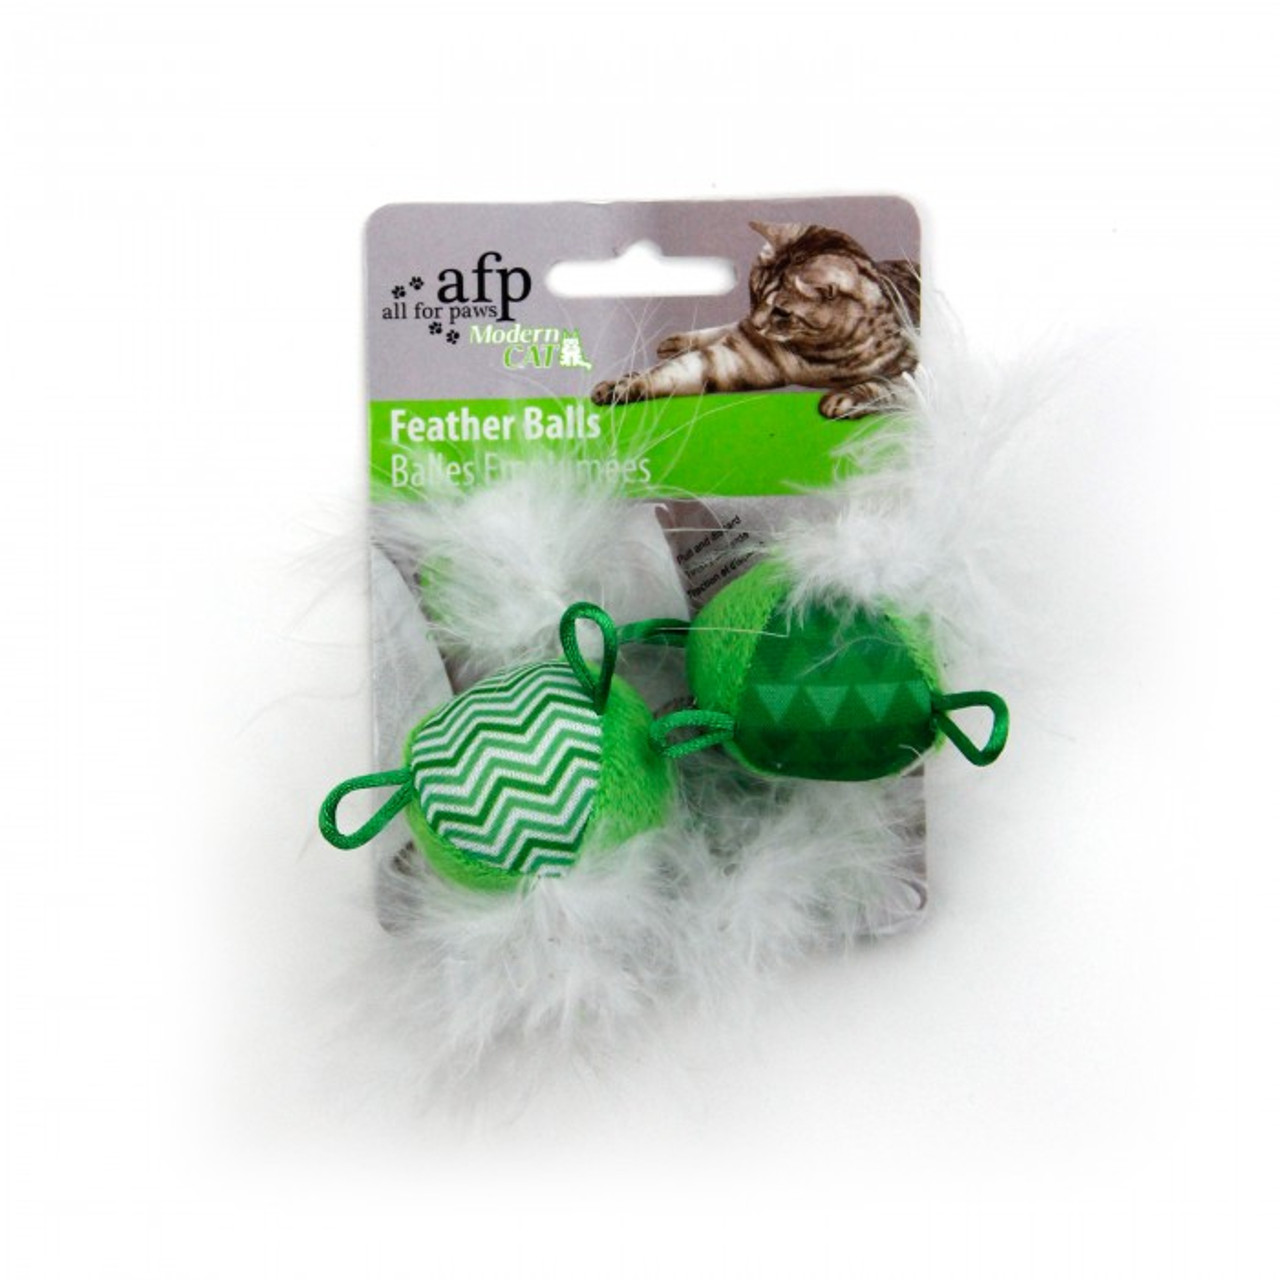 All for Paws Modern Cat Feather Balls - Green